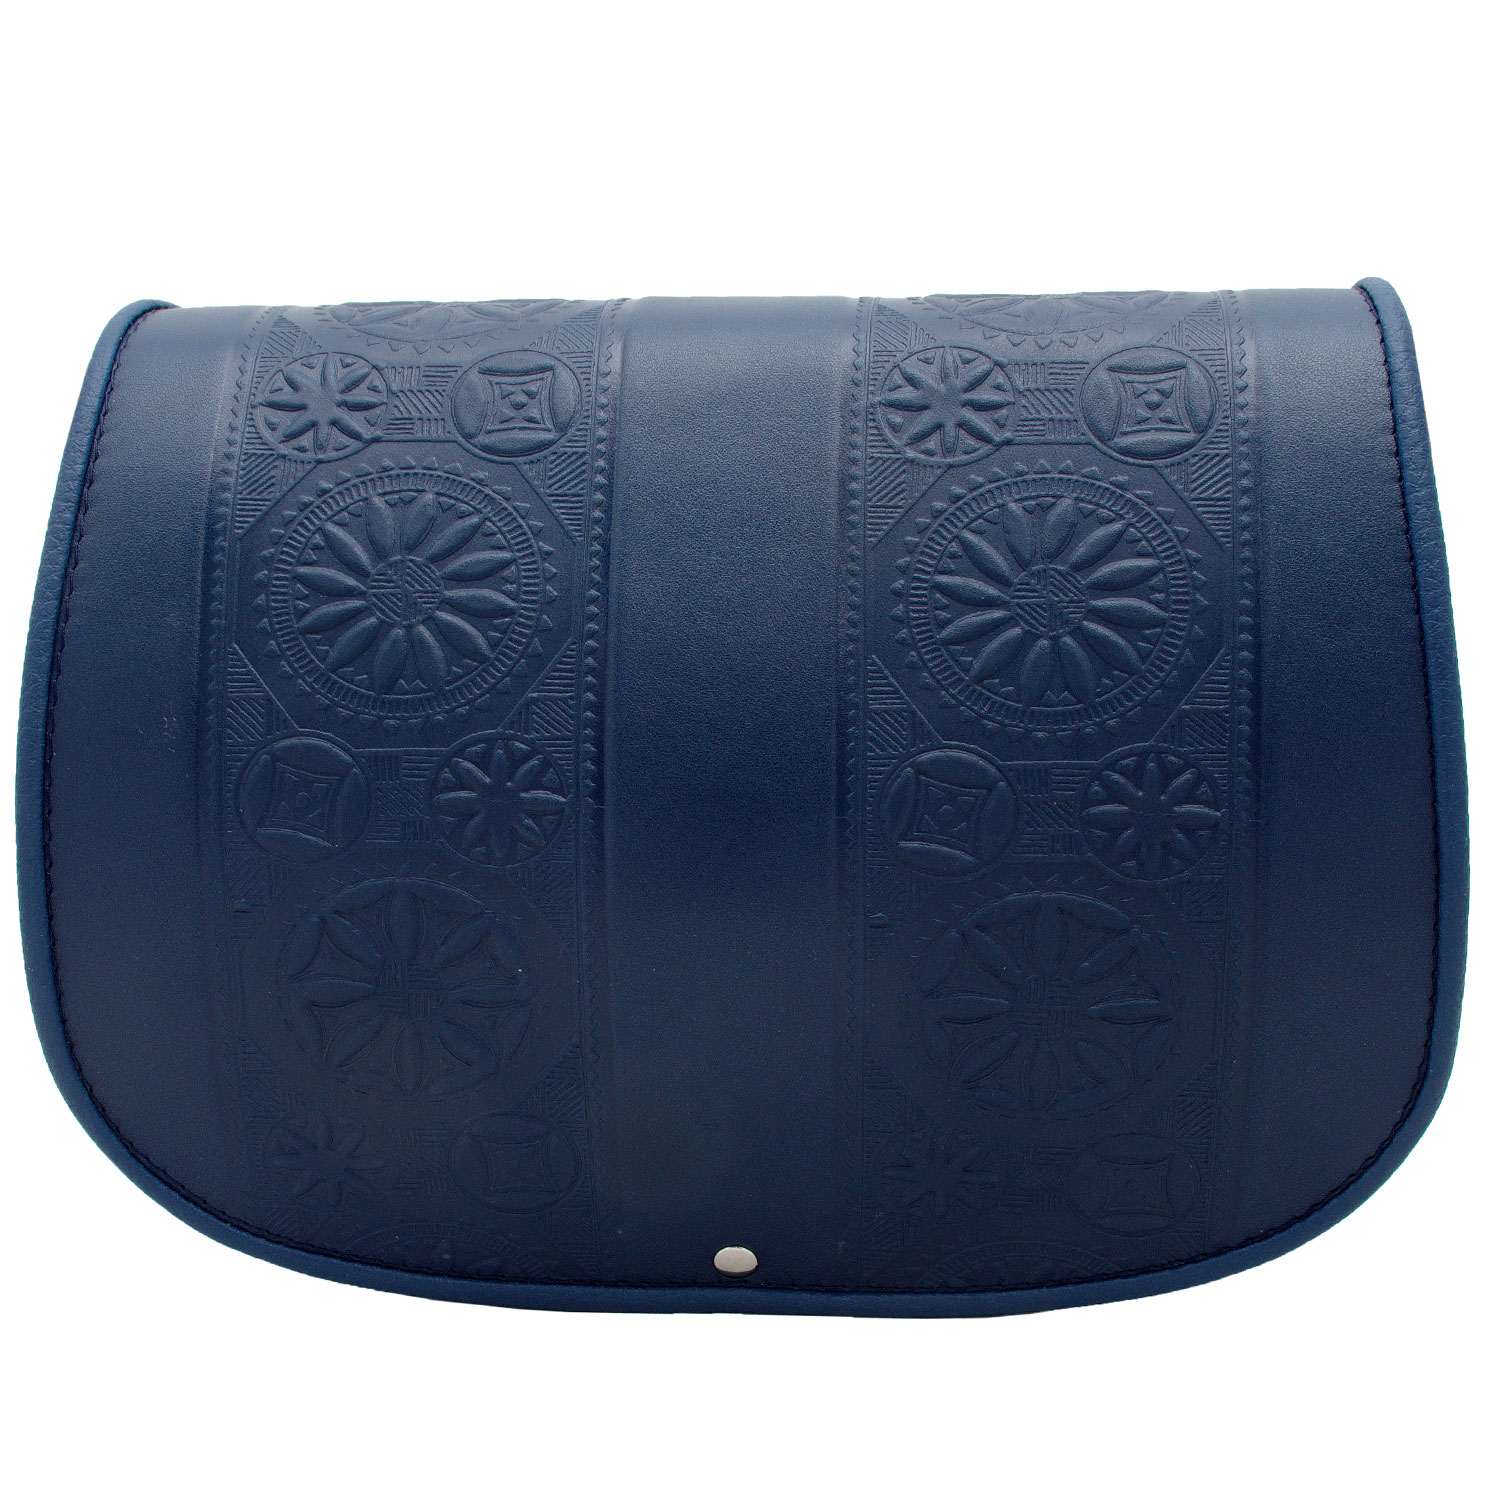 blue-leather-full-grain-woman-bag-shoulder-messenger-satchel-popular-motifs